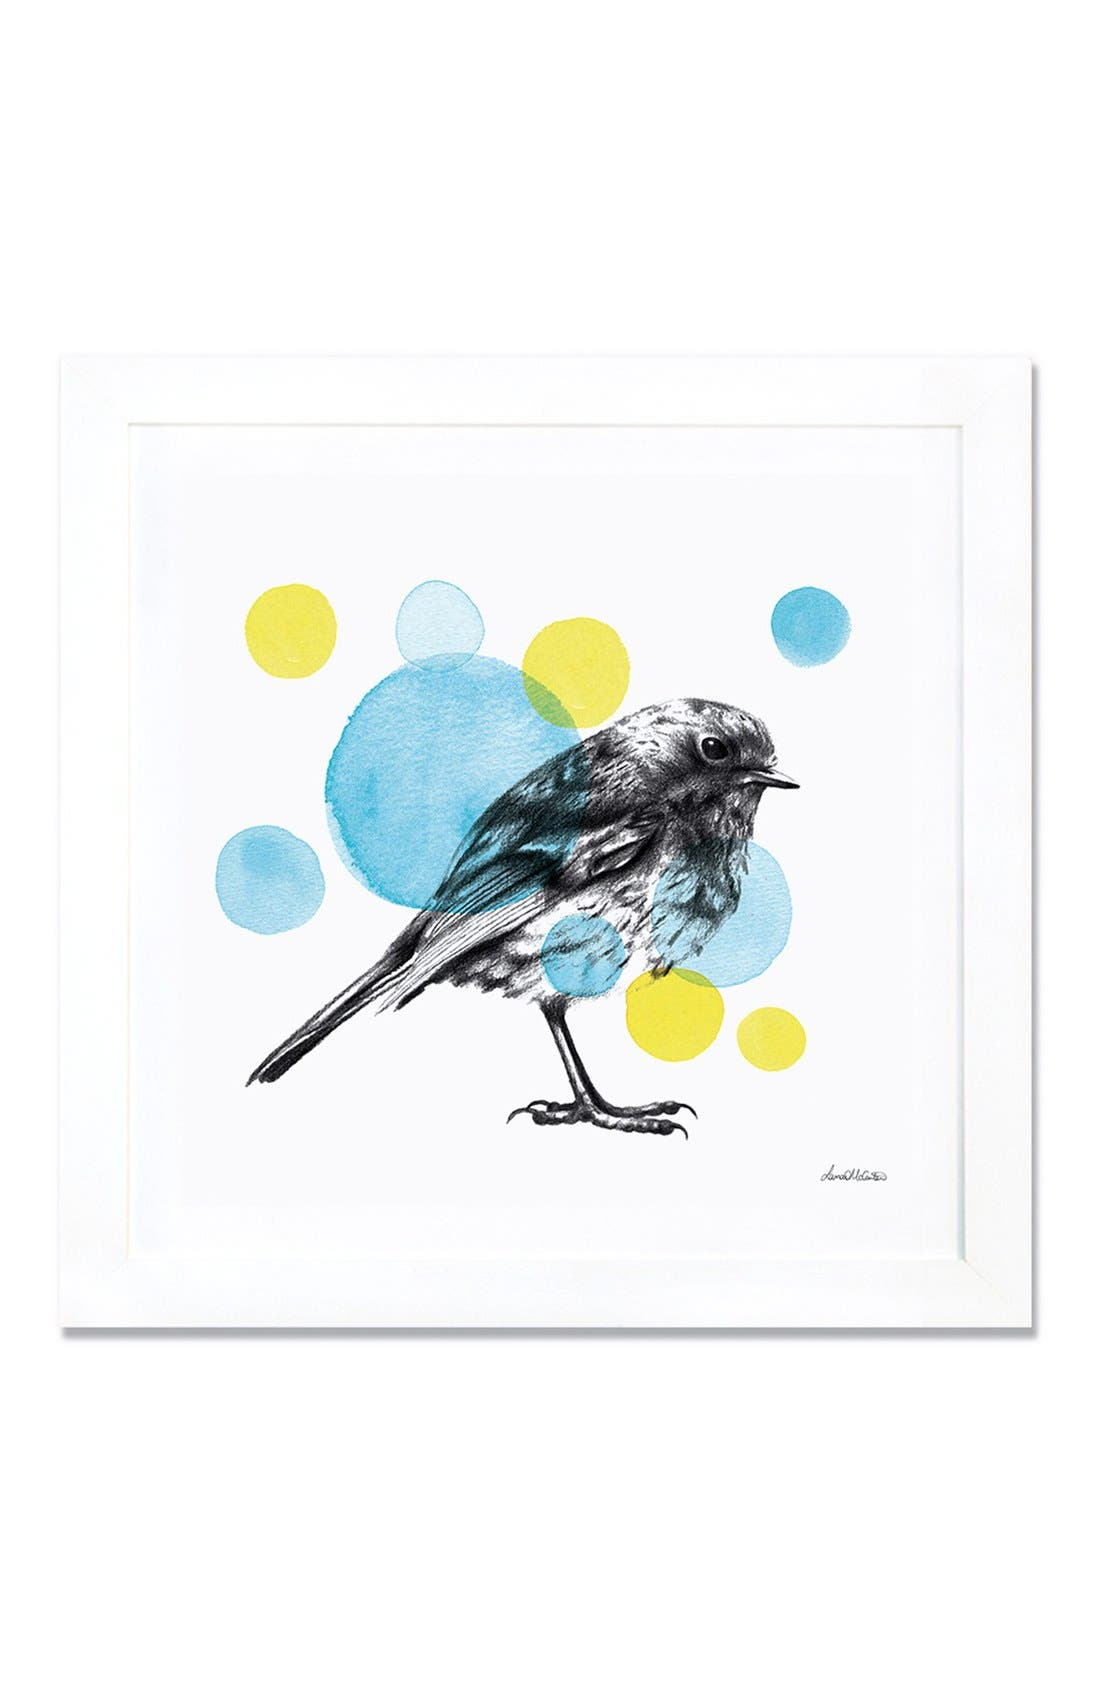 'Sketchbook - Bird' Giclée Print Framed Canvas Art,                         Main,                         color, White